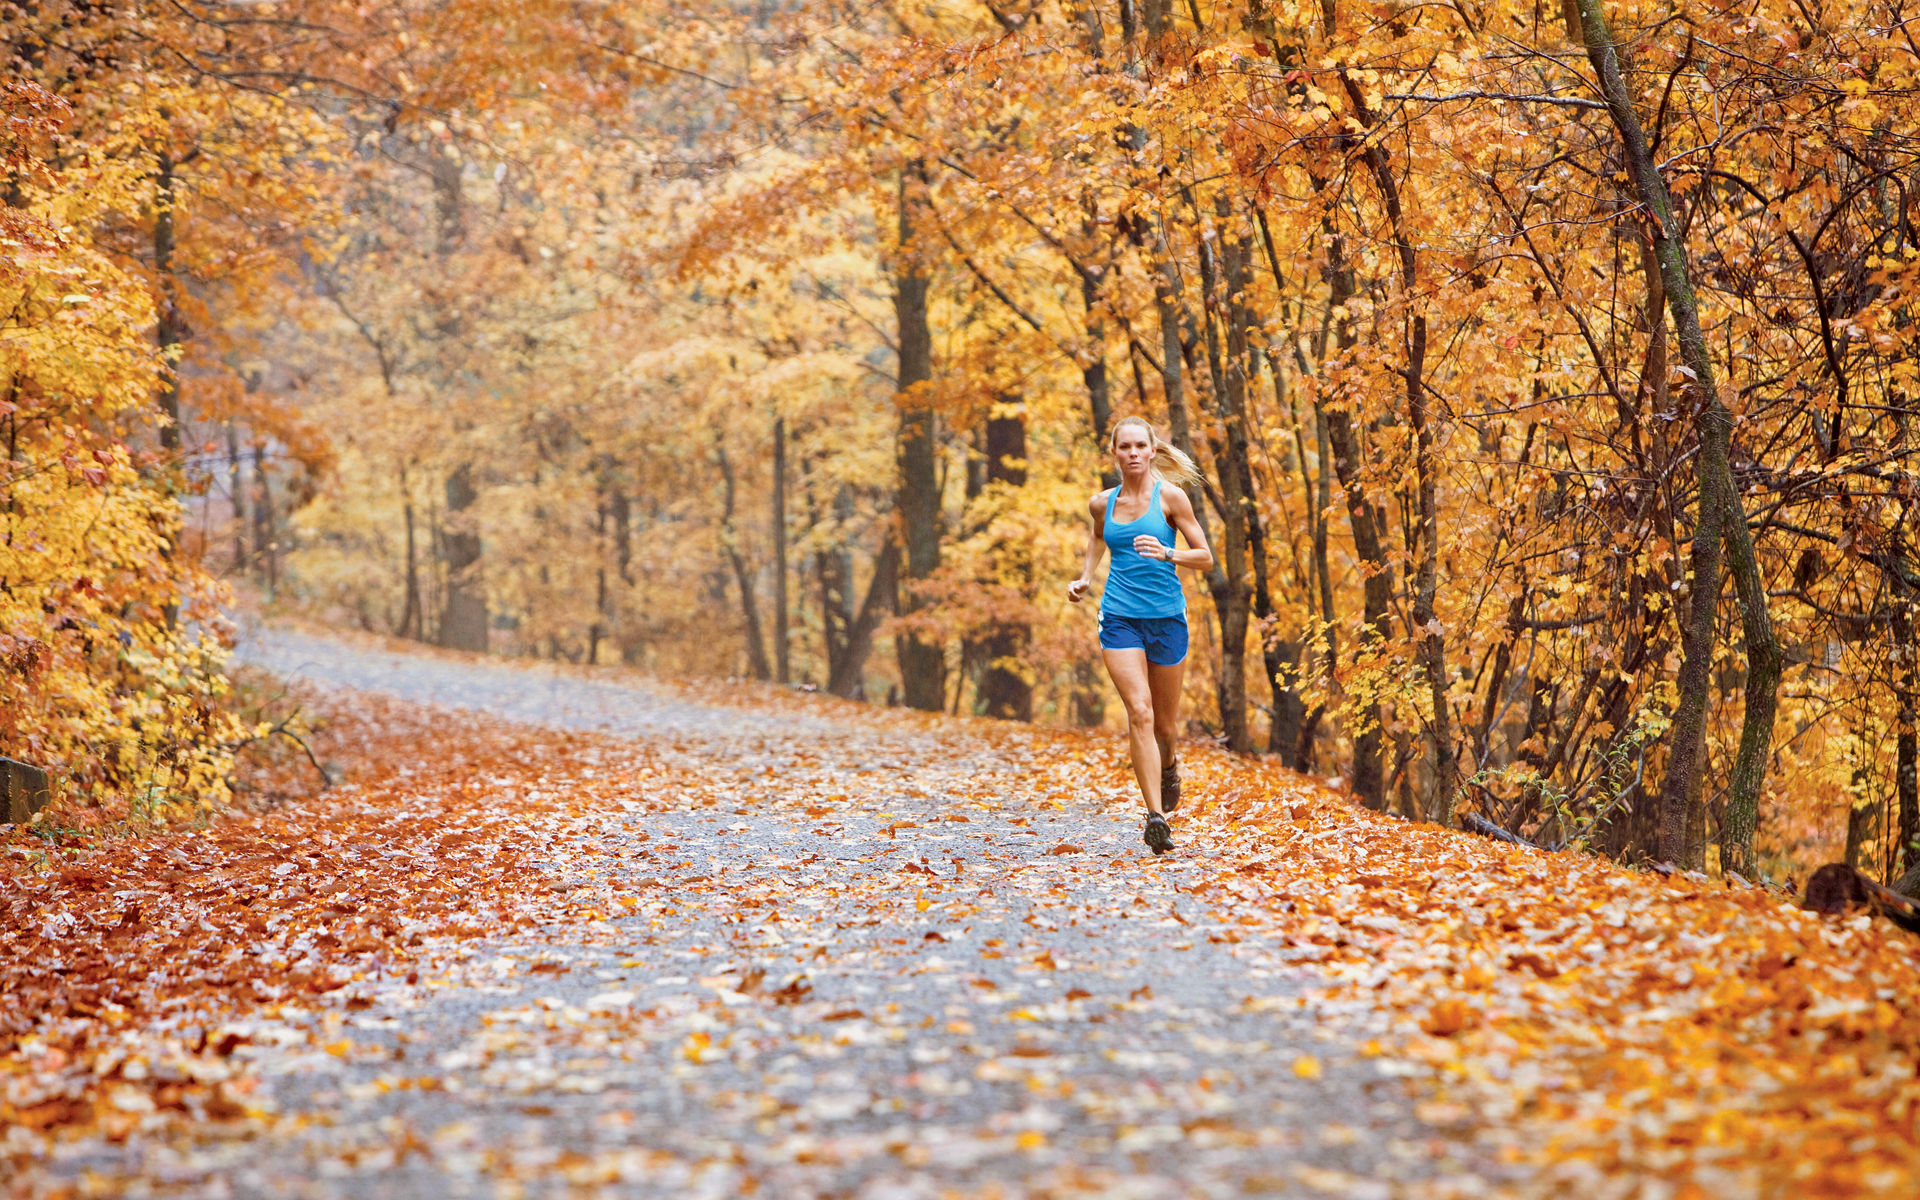 Trail Running Wallpaper Trail runners take it x View. Ultra Running Wallpaper Ultra Running Wallpaper Utmb x View. Trail Running Wallpaper Name trail in the woods x Runner's World Wallpaper. Running Wallpapers for Desktop. Running Wallpaper HD.